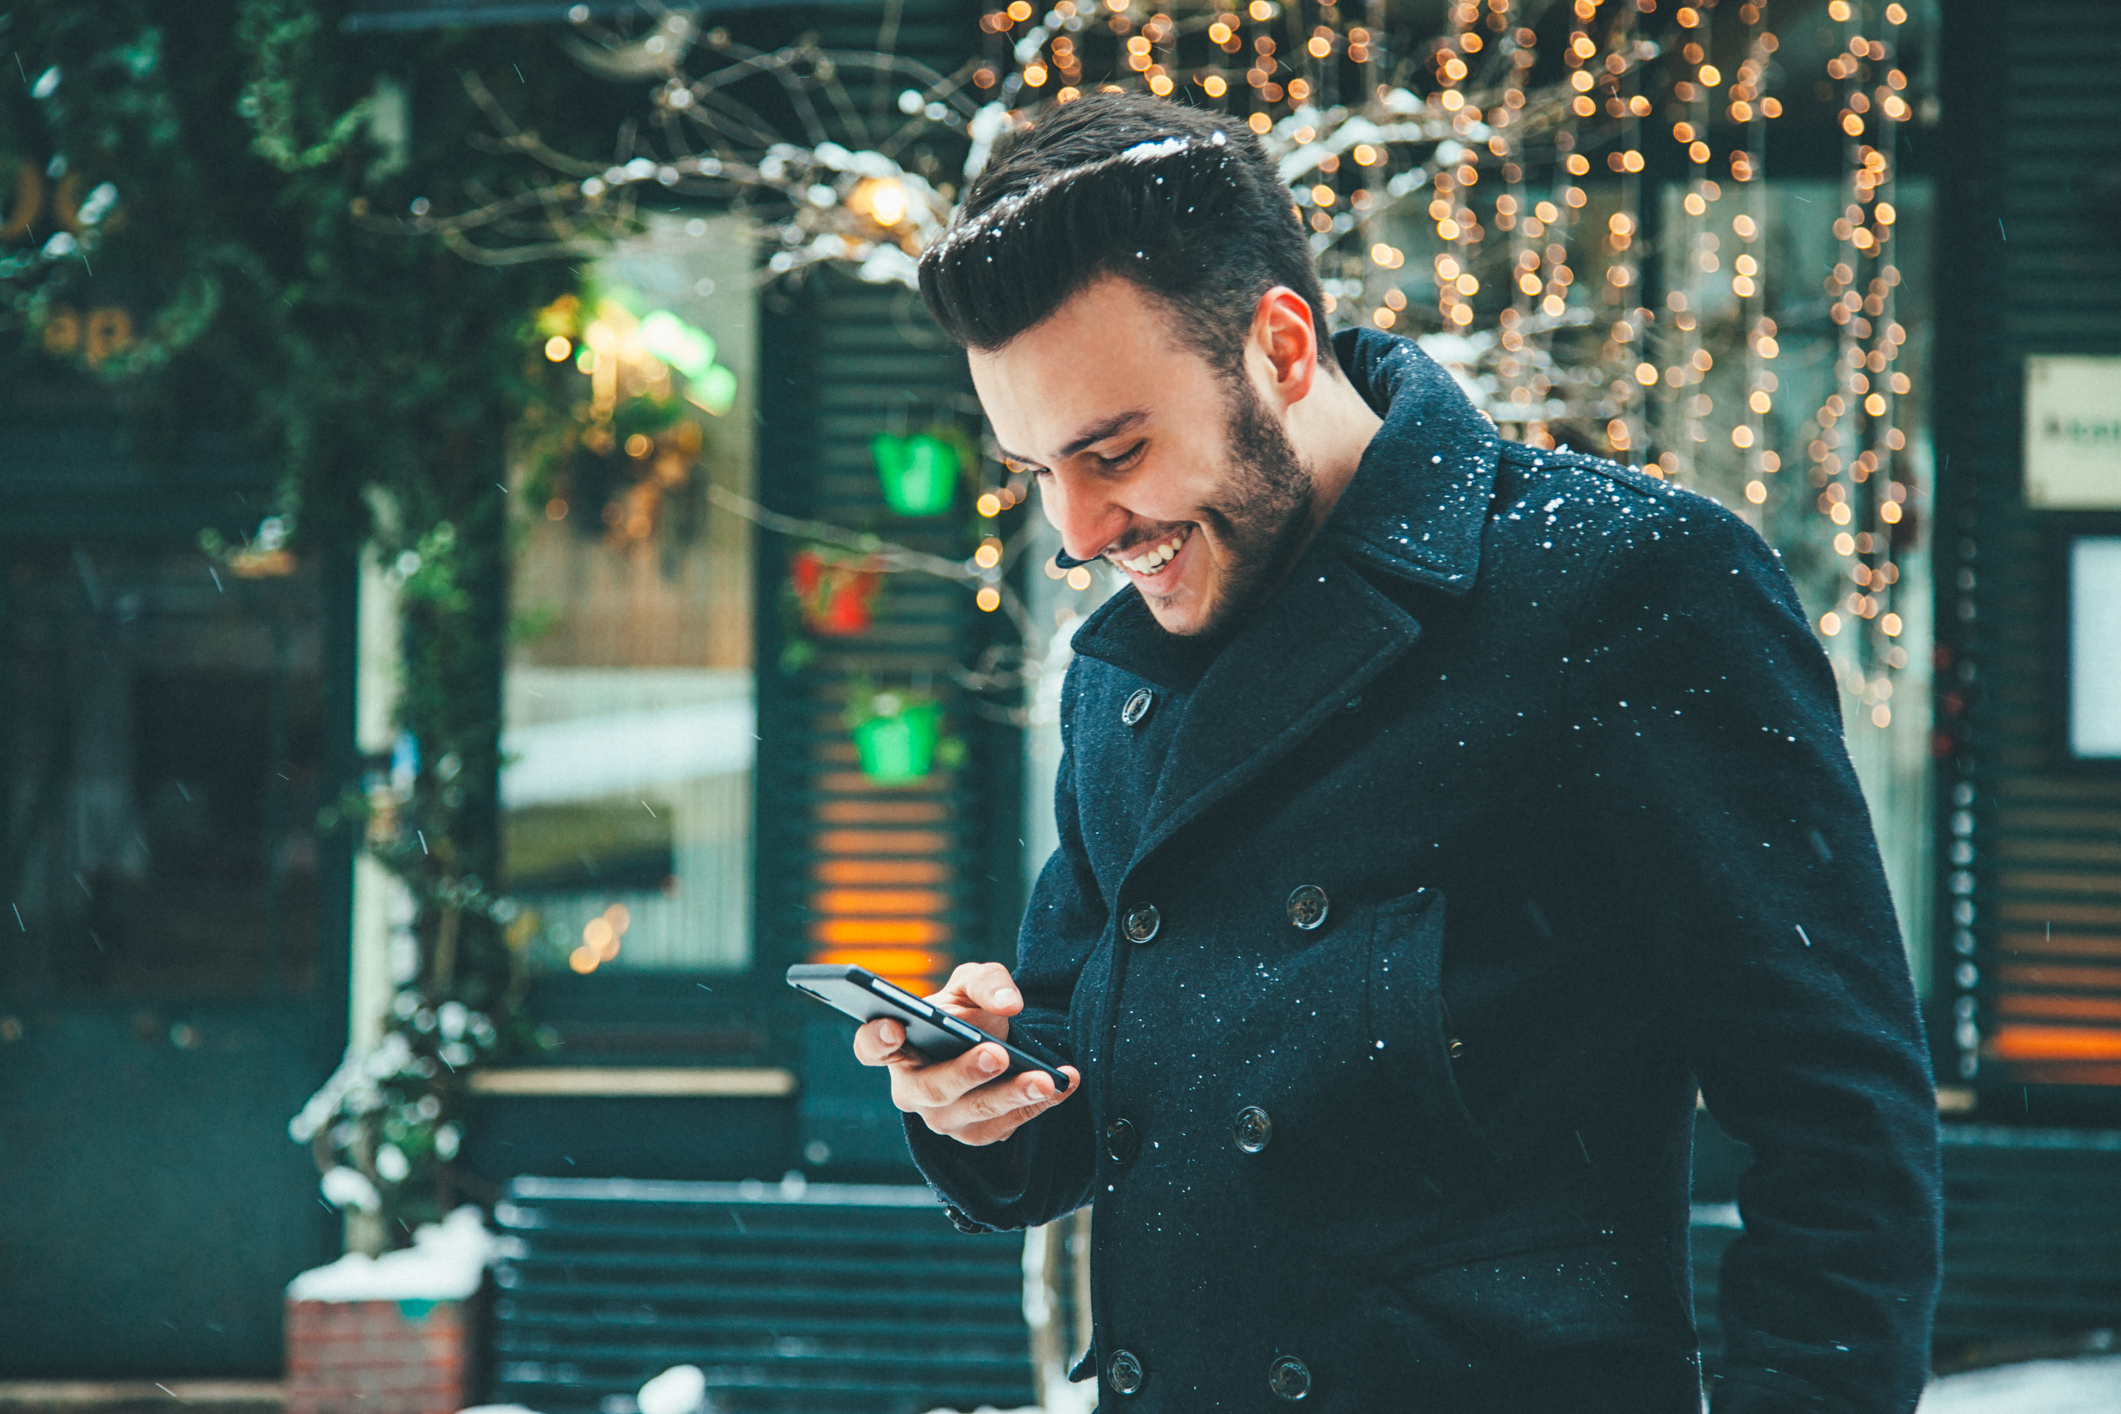 Man wearing winter coat outdoors using smartphone